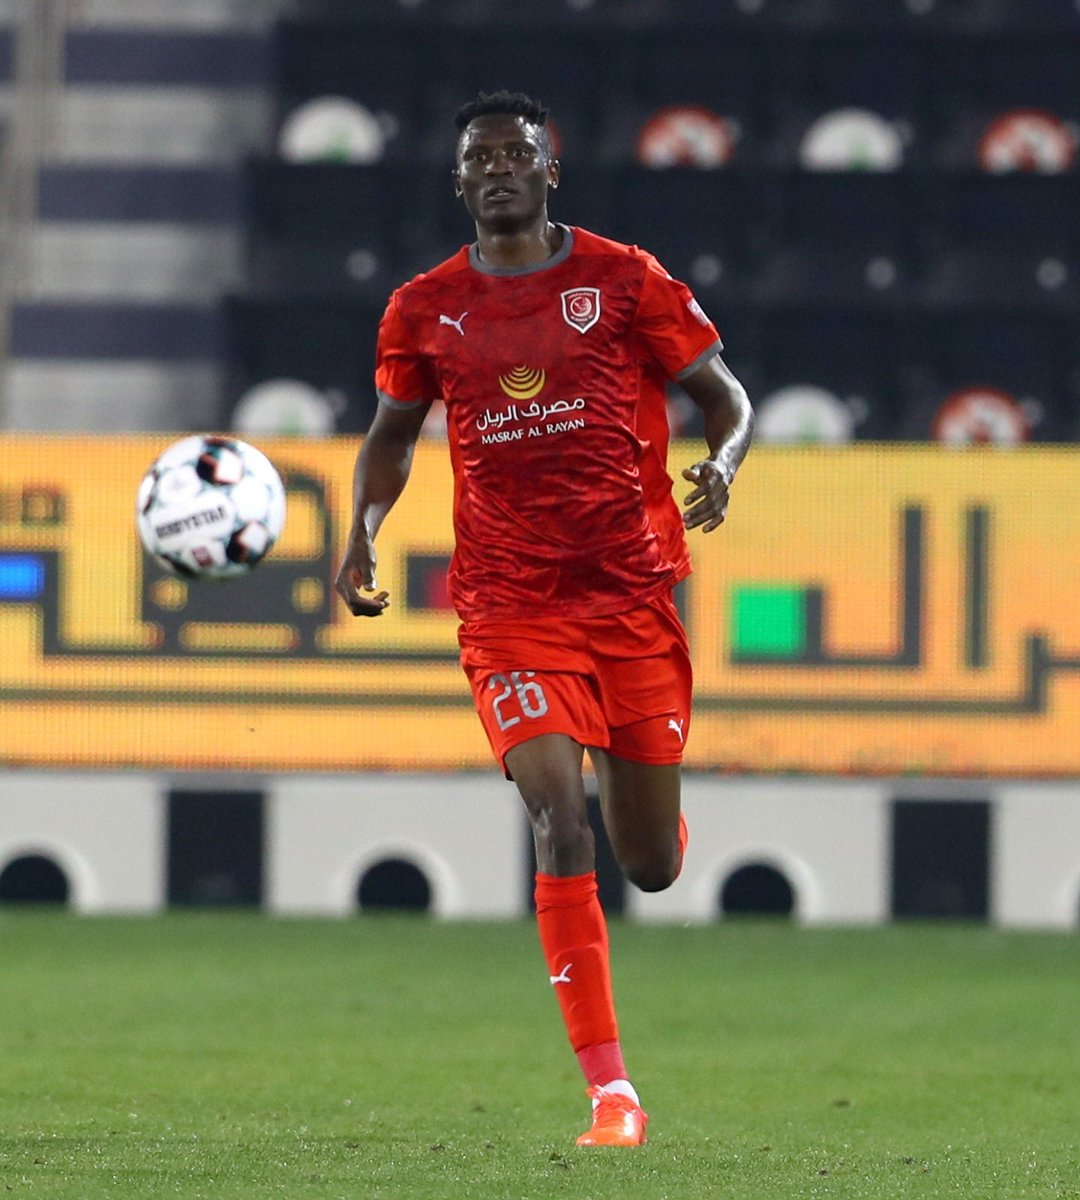 Michael Olunga is set to participate in the 2020 FIFA Club World Cup set for Qatar from 1-11 February.  Al Duhail SC qualified following the withdrawal of Auckland City of New Zealand due to COVID-19 restrictions.  The draw will be conducted on 19th this month. #ClubWC